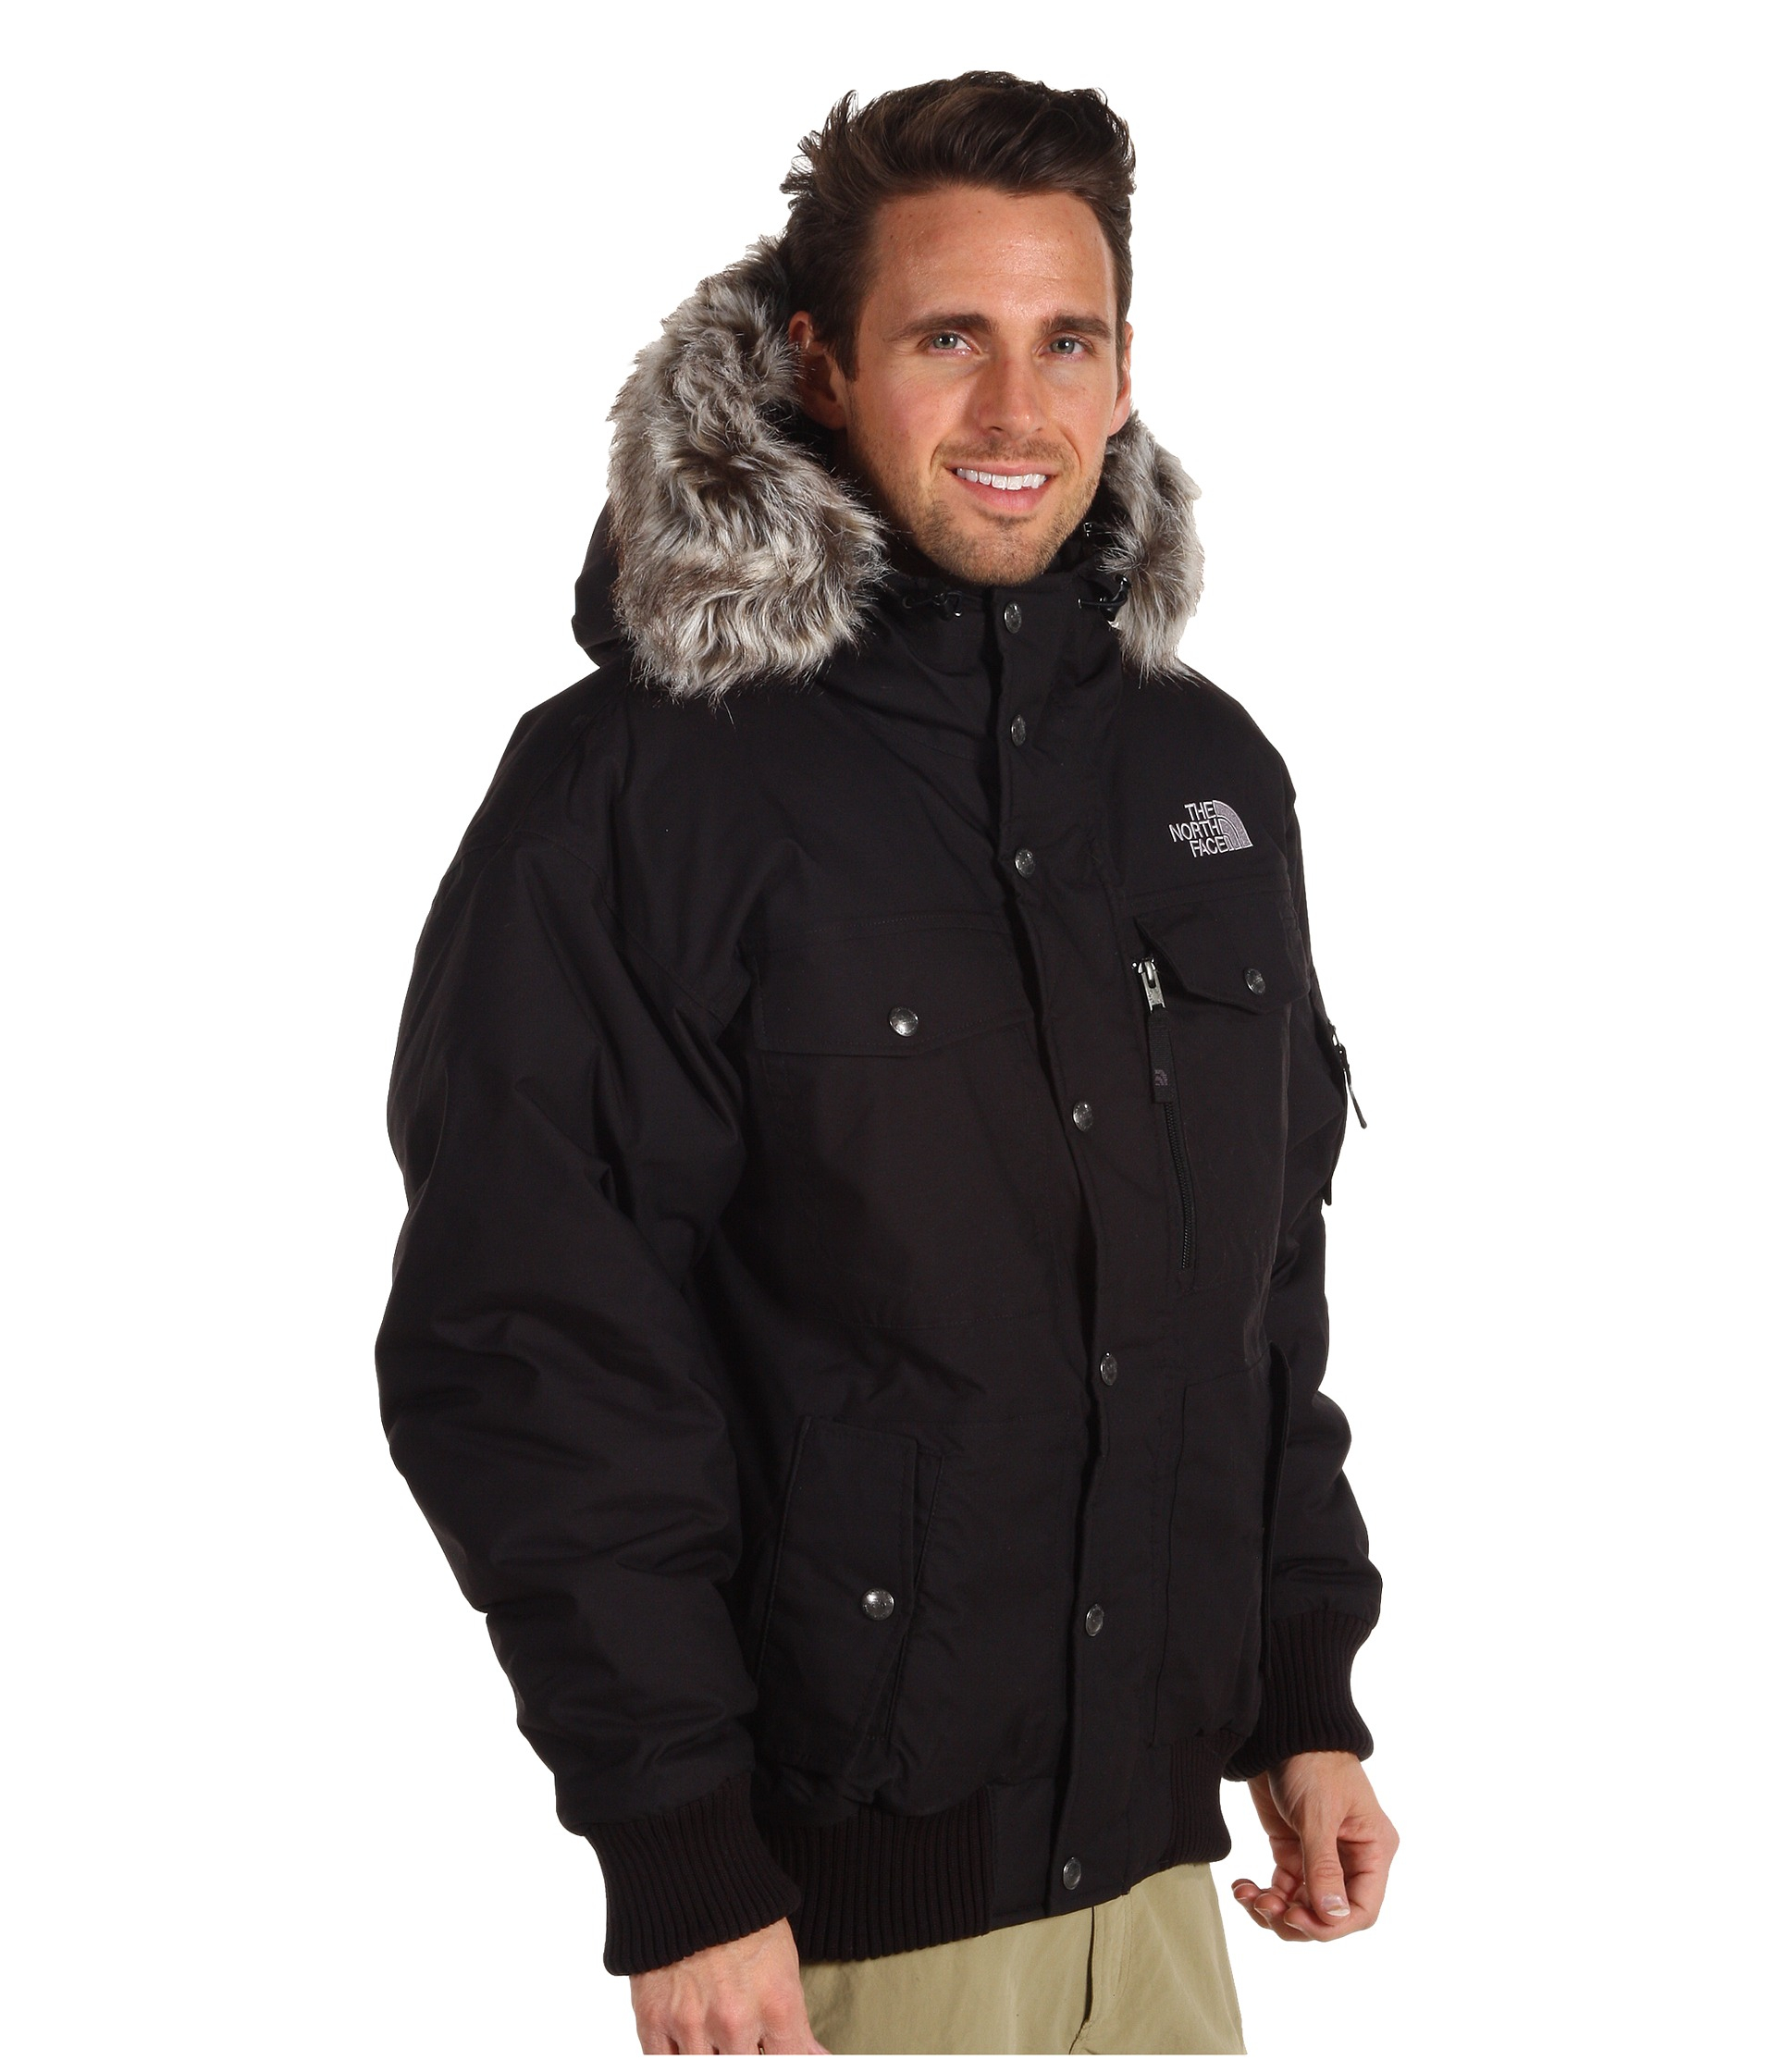 c478ead7c switzerland the north face gotham jacket on sale d6982 1b437